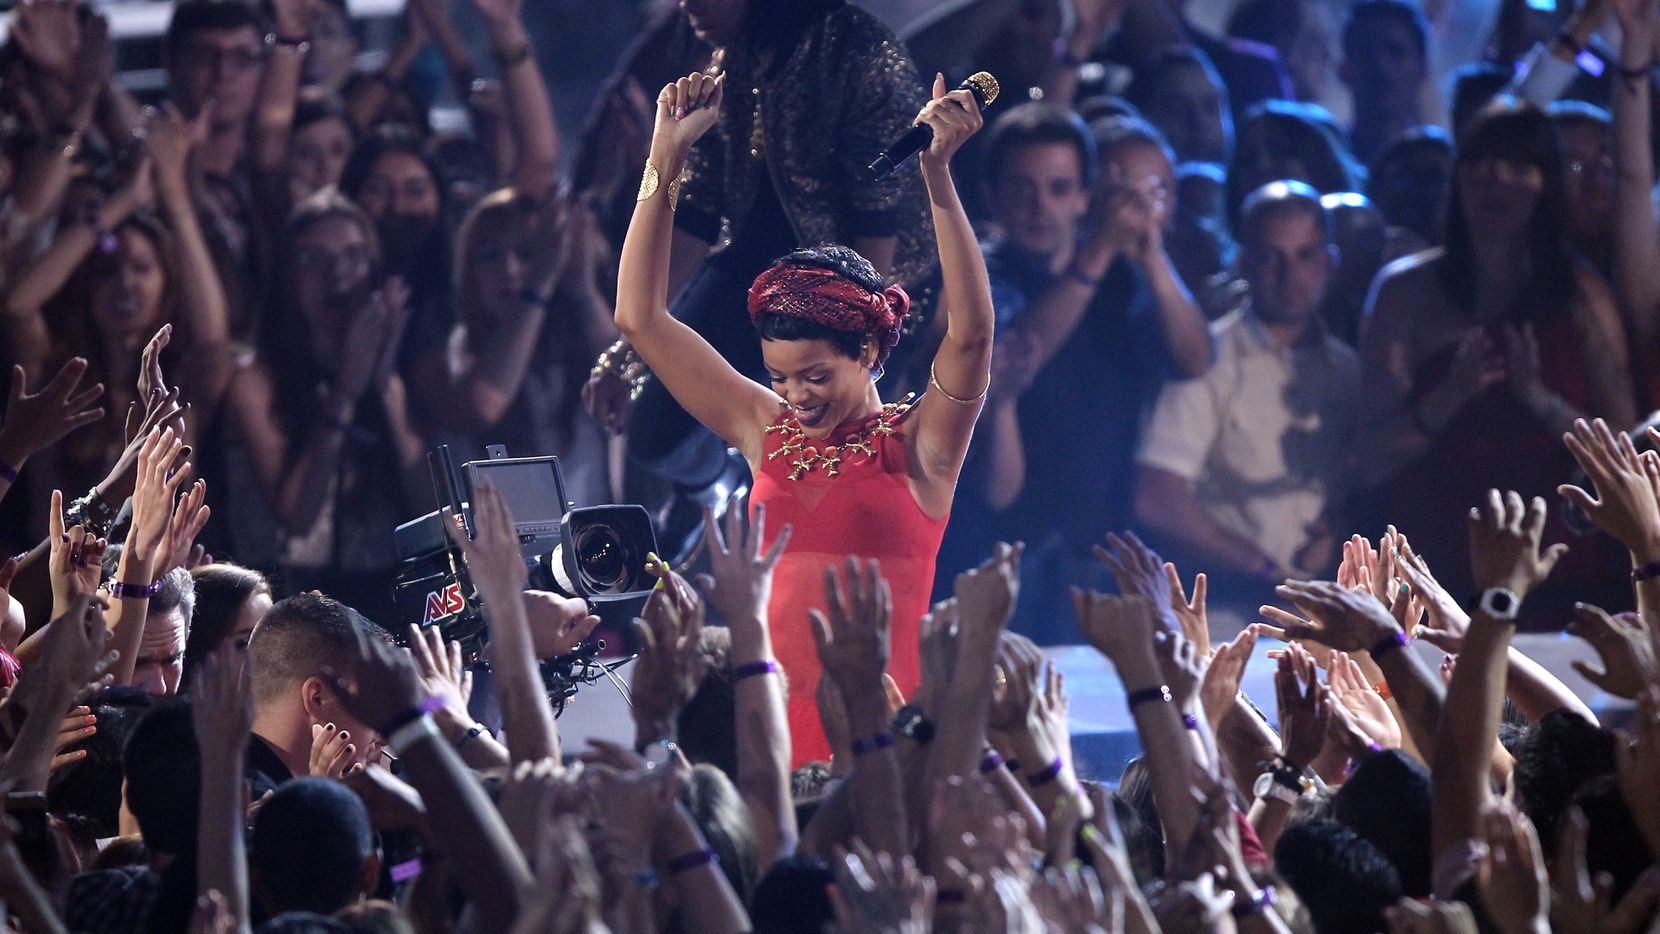 Rihanna performs at the MTV Video Music Awards on Sept. 6, 2012, in Los Angeles. (Photo by Matt Sayles/Invision/AP)